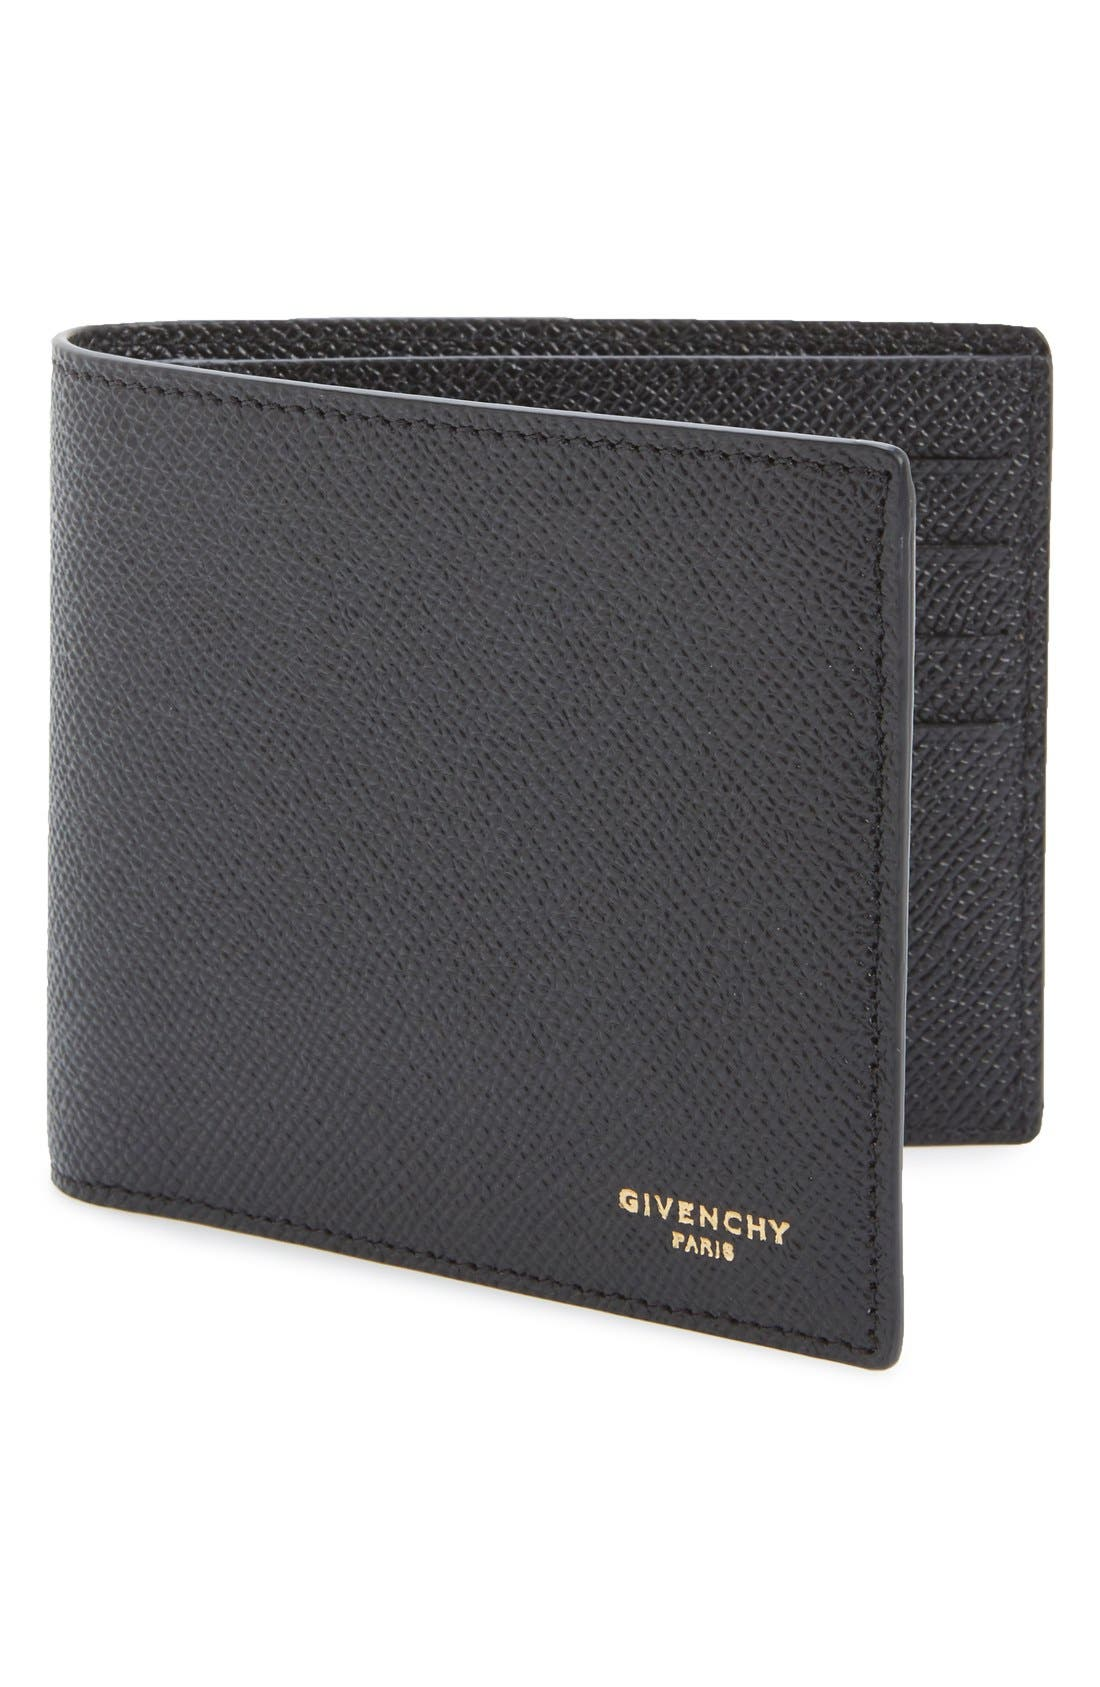 Calfskin Leather Bifold Wallet,                         Main,                         color, BLACK